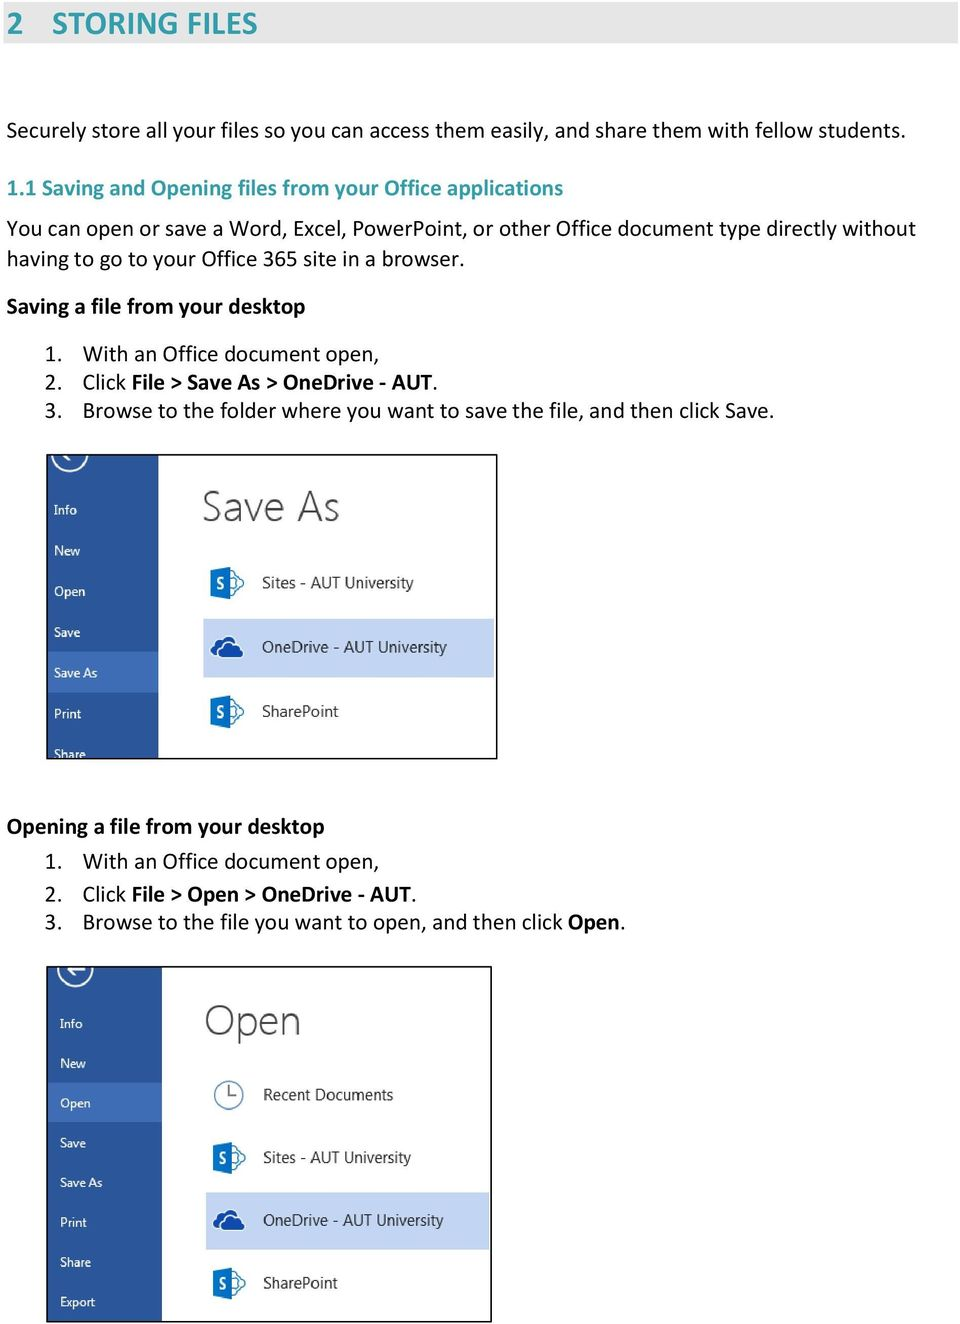 your Office 365 site in a browser. Saving a file from your desktop 1. With an Office document open, 2. Click File > Save As > OneDrive - AUT. 3. Browse to the folder where you want to save the file, and then click Save.